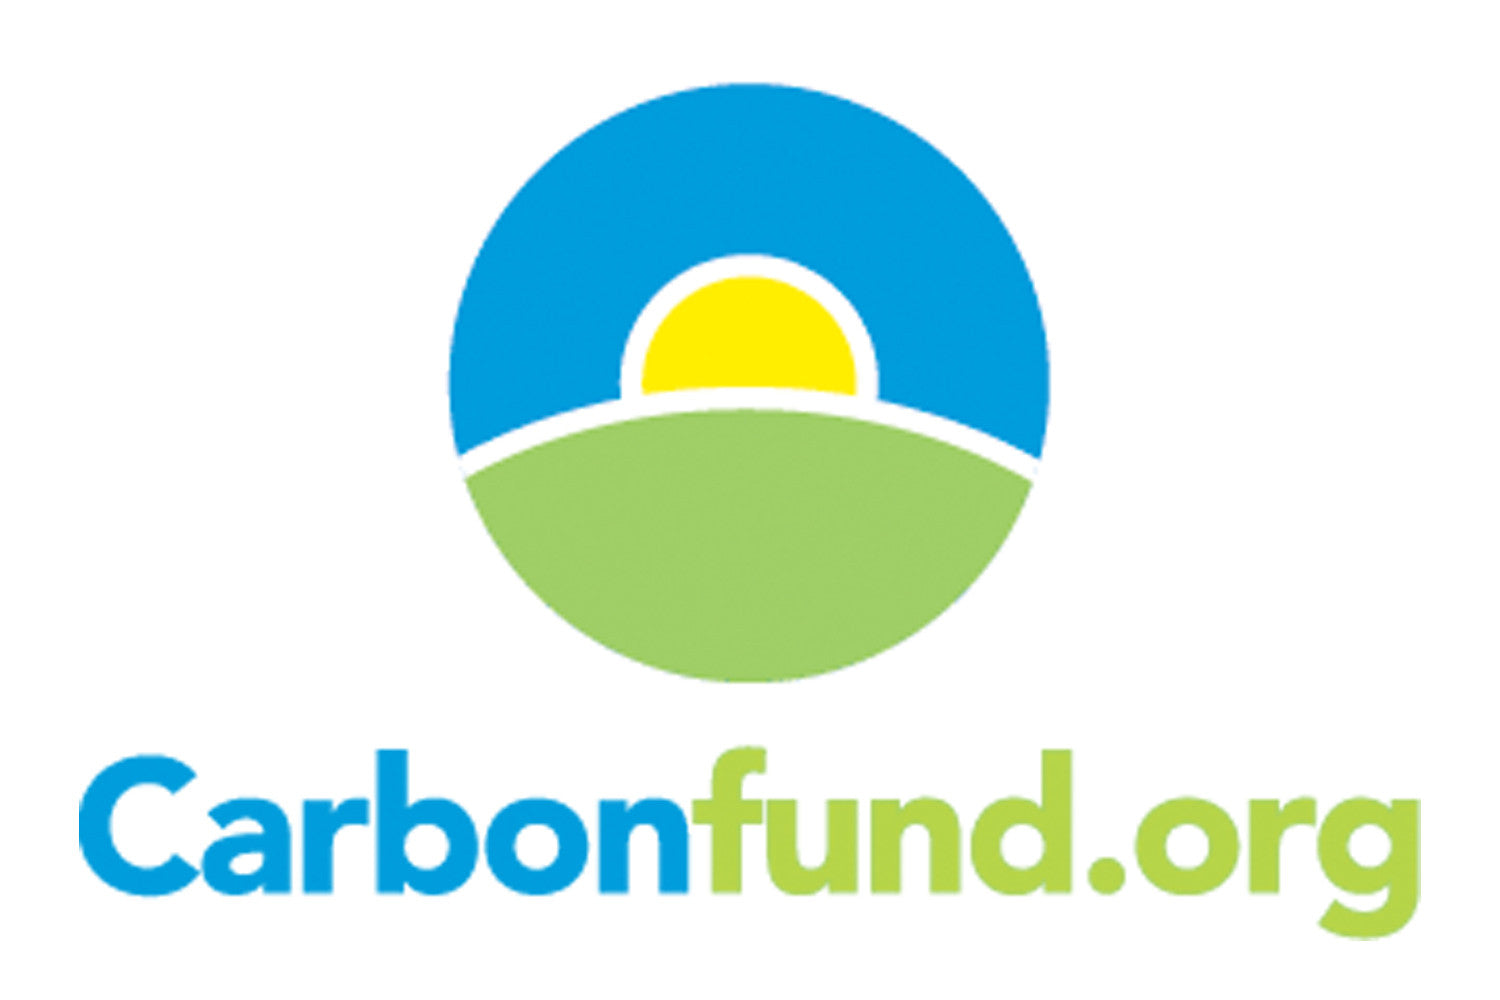 Carbonfund. org Foundation logo